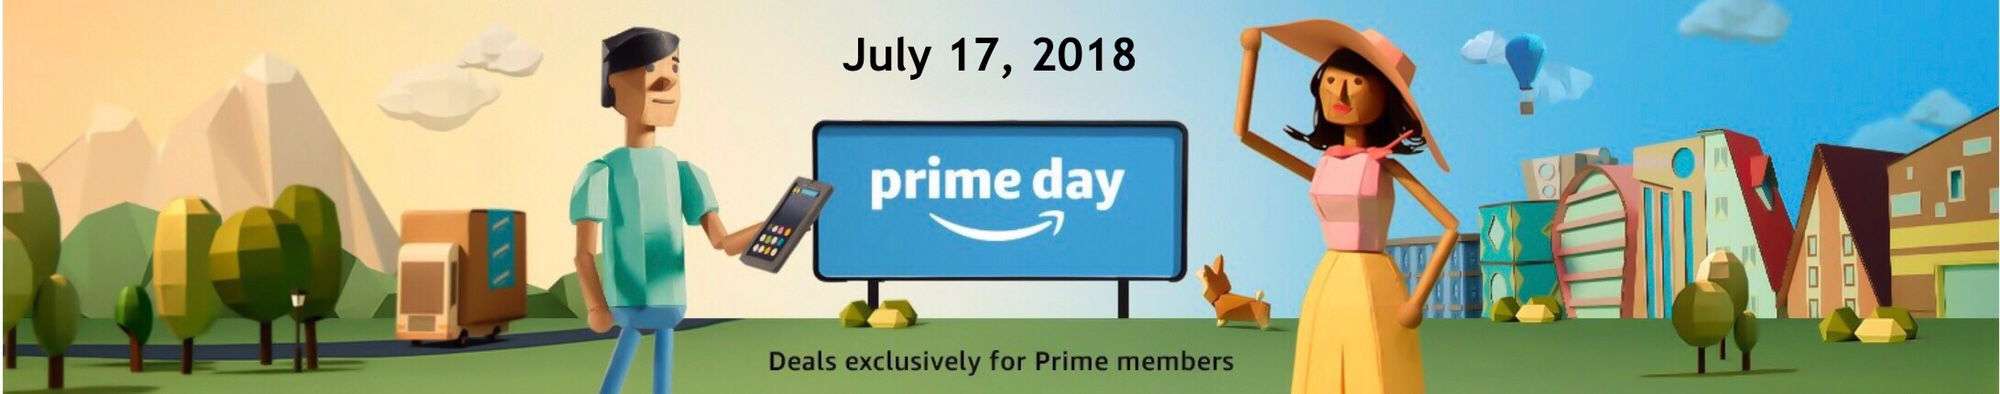 Great Last Minute Amazon Prime Deals…or not